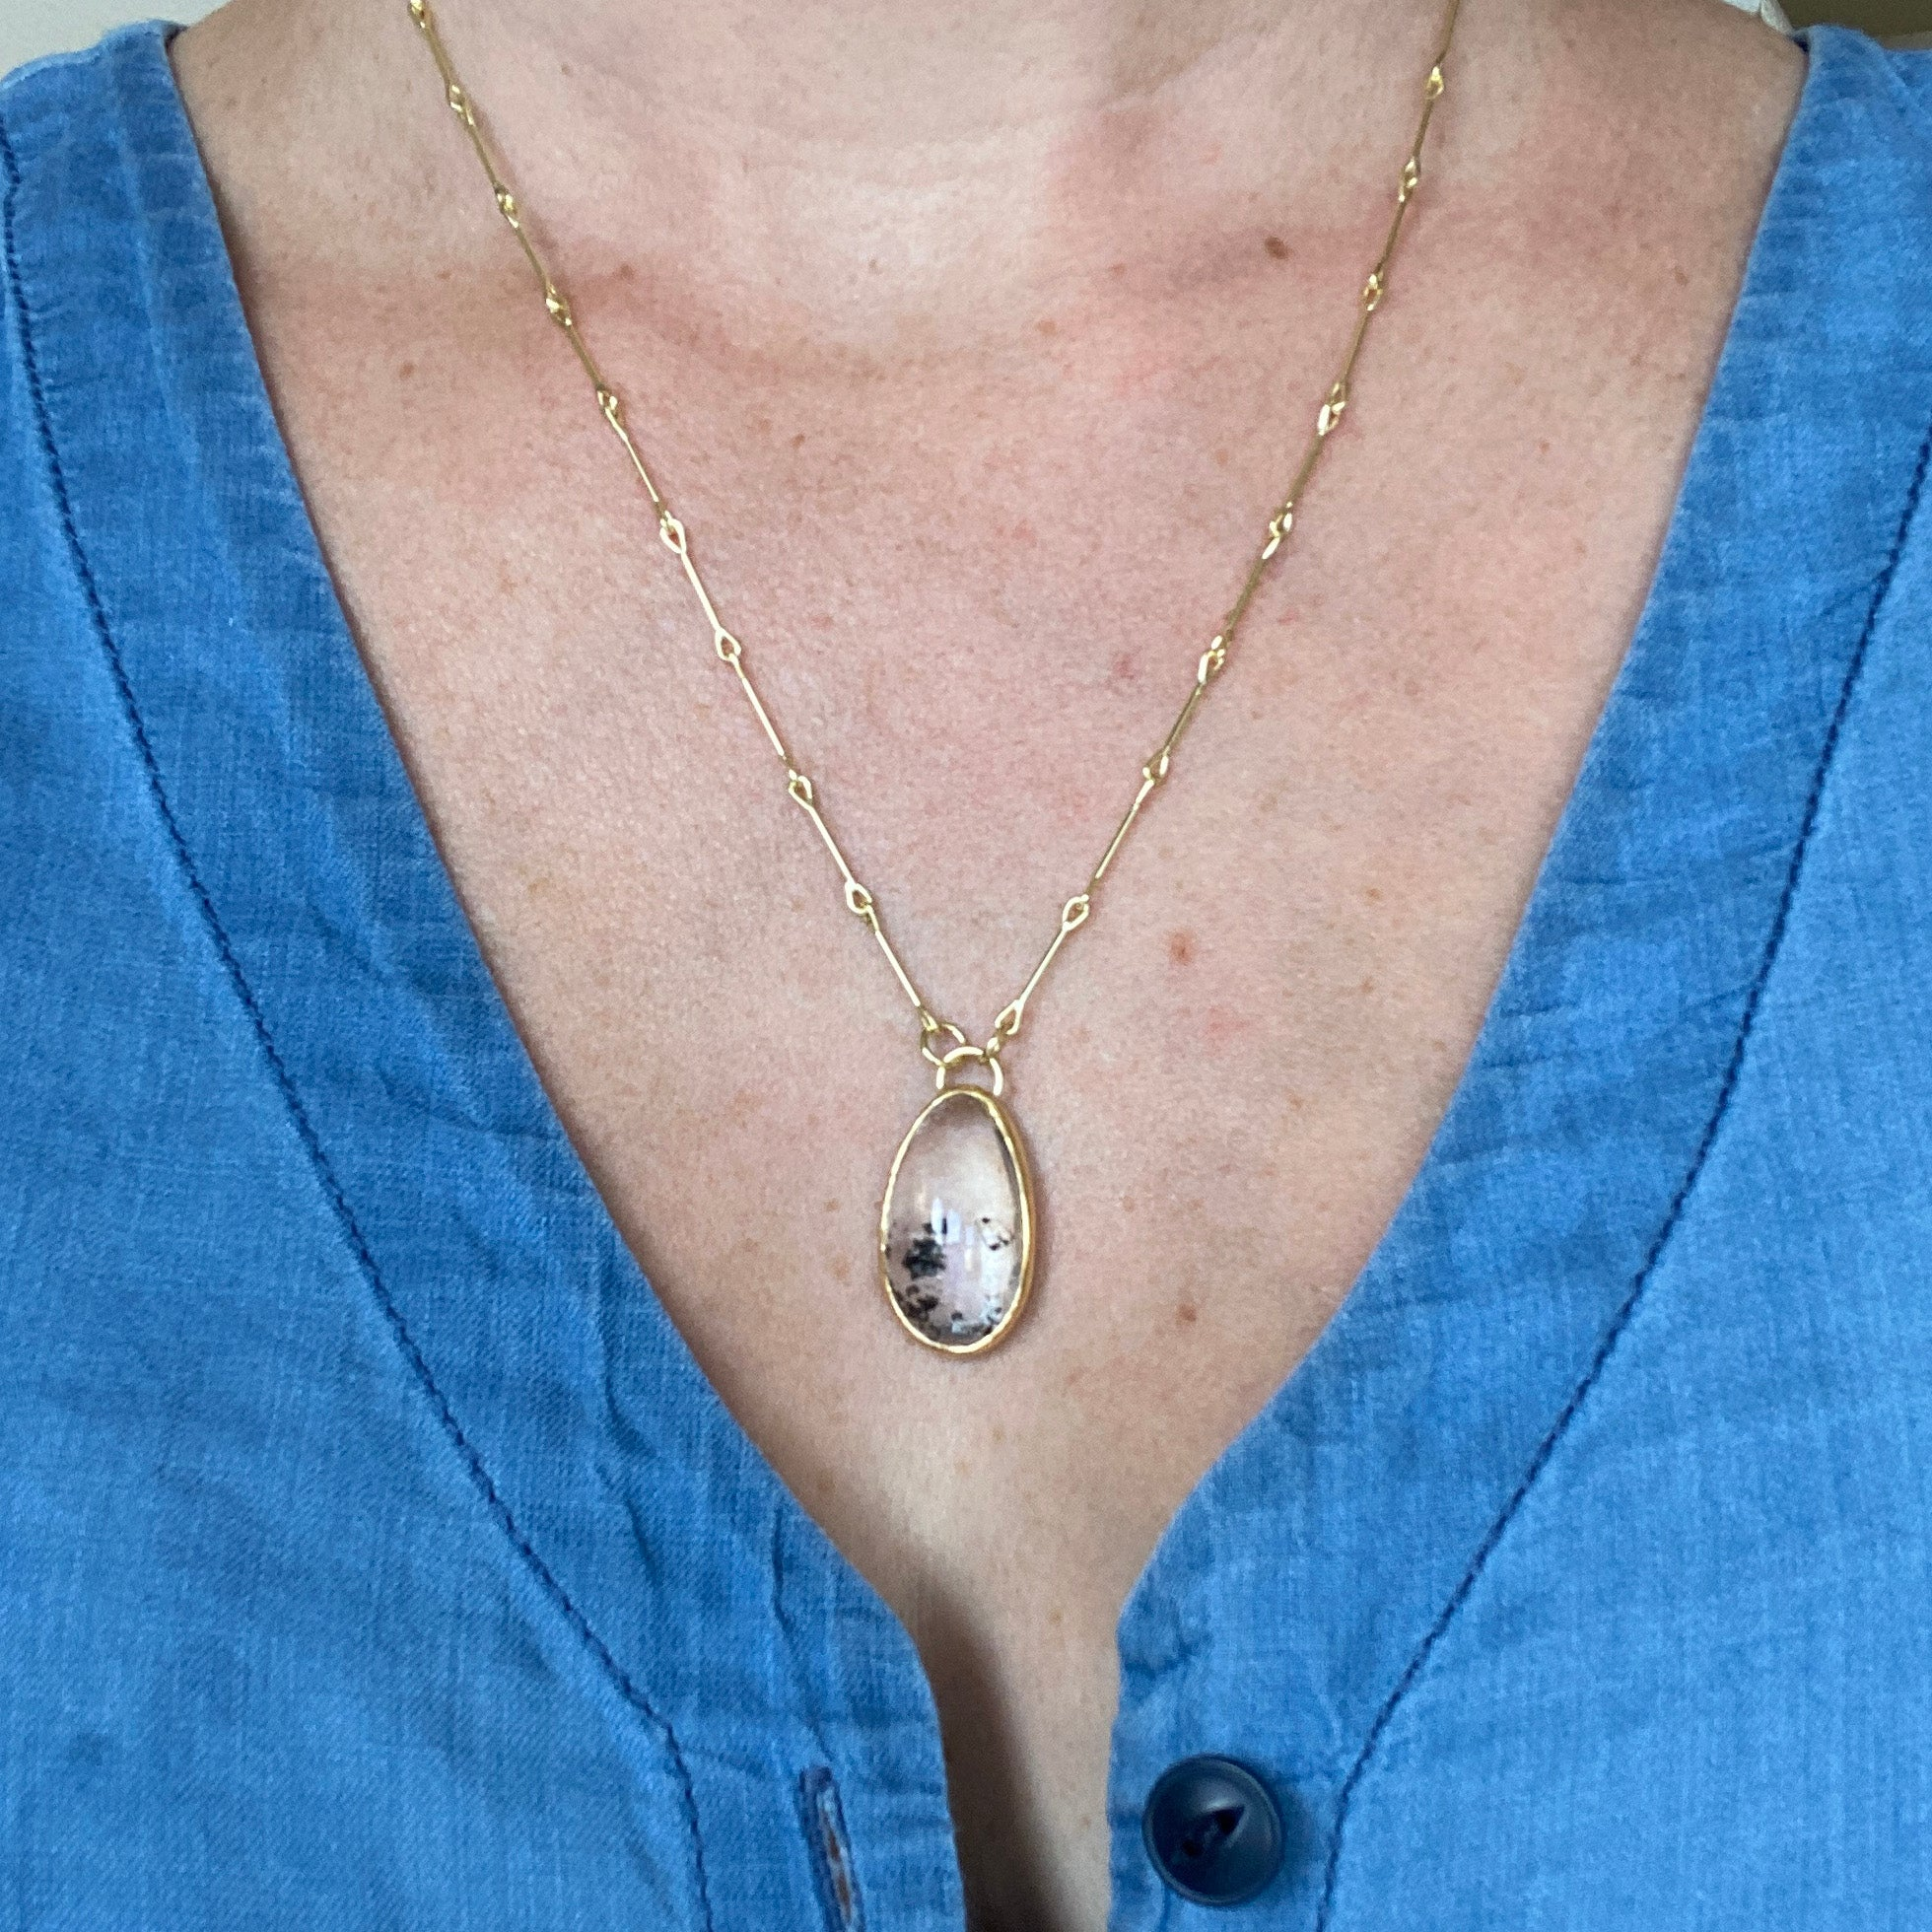 Small Quicksand Quartz Necklace